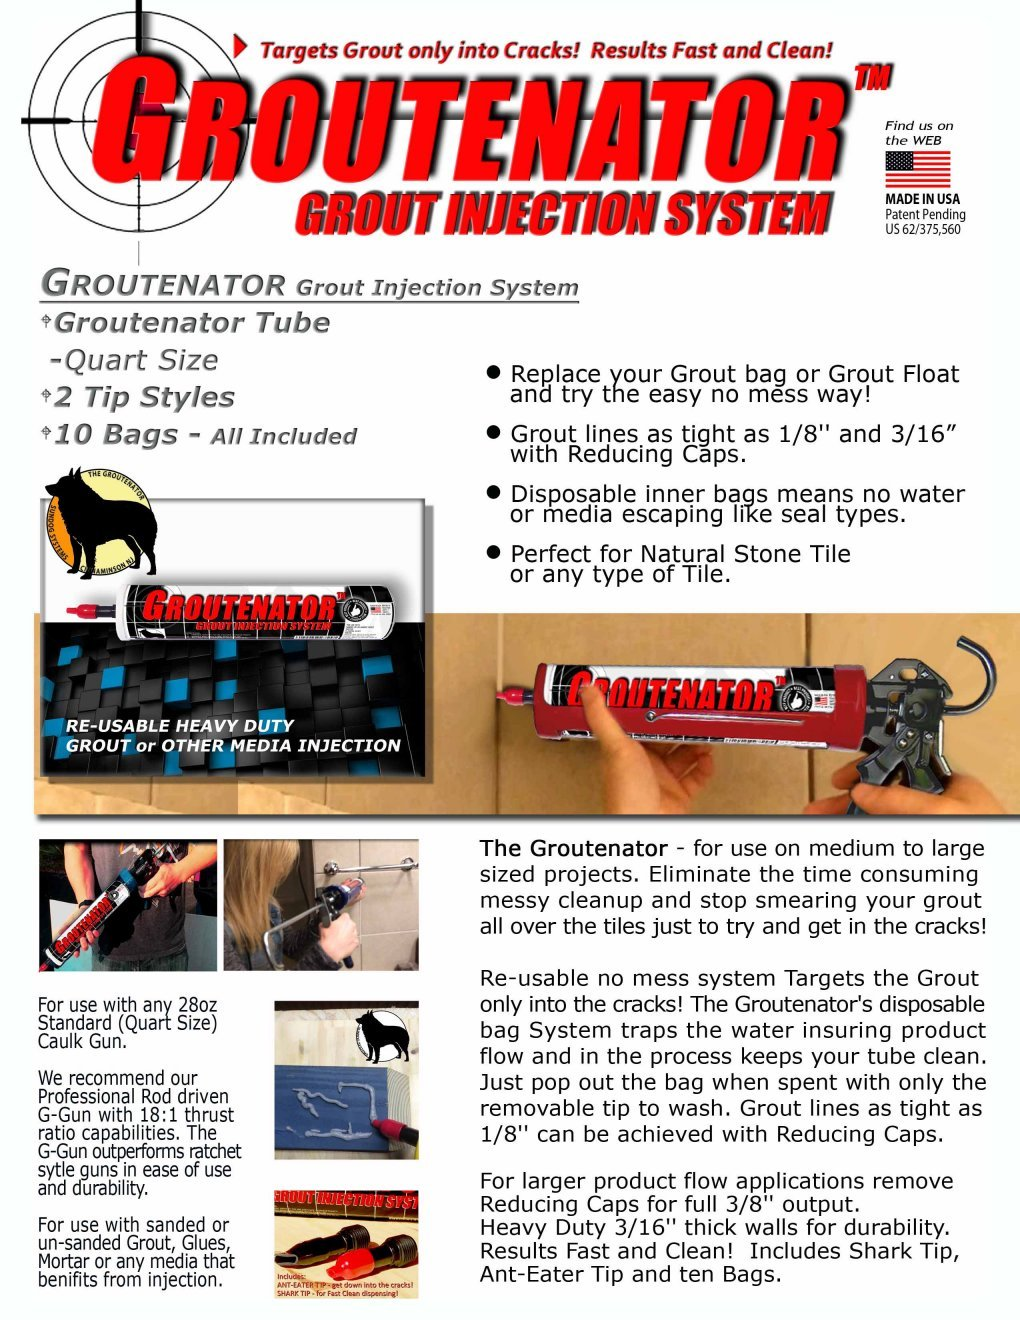 GROUTENATOR - Caulk Gun Injection System for Tile Grout, Mortar, Cement, Glues and more... Grout Bag and Float Replacement. by Sundog Systems (Image #3)